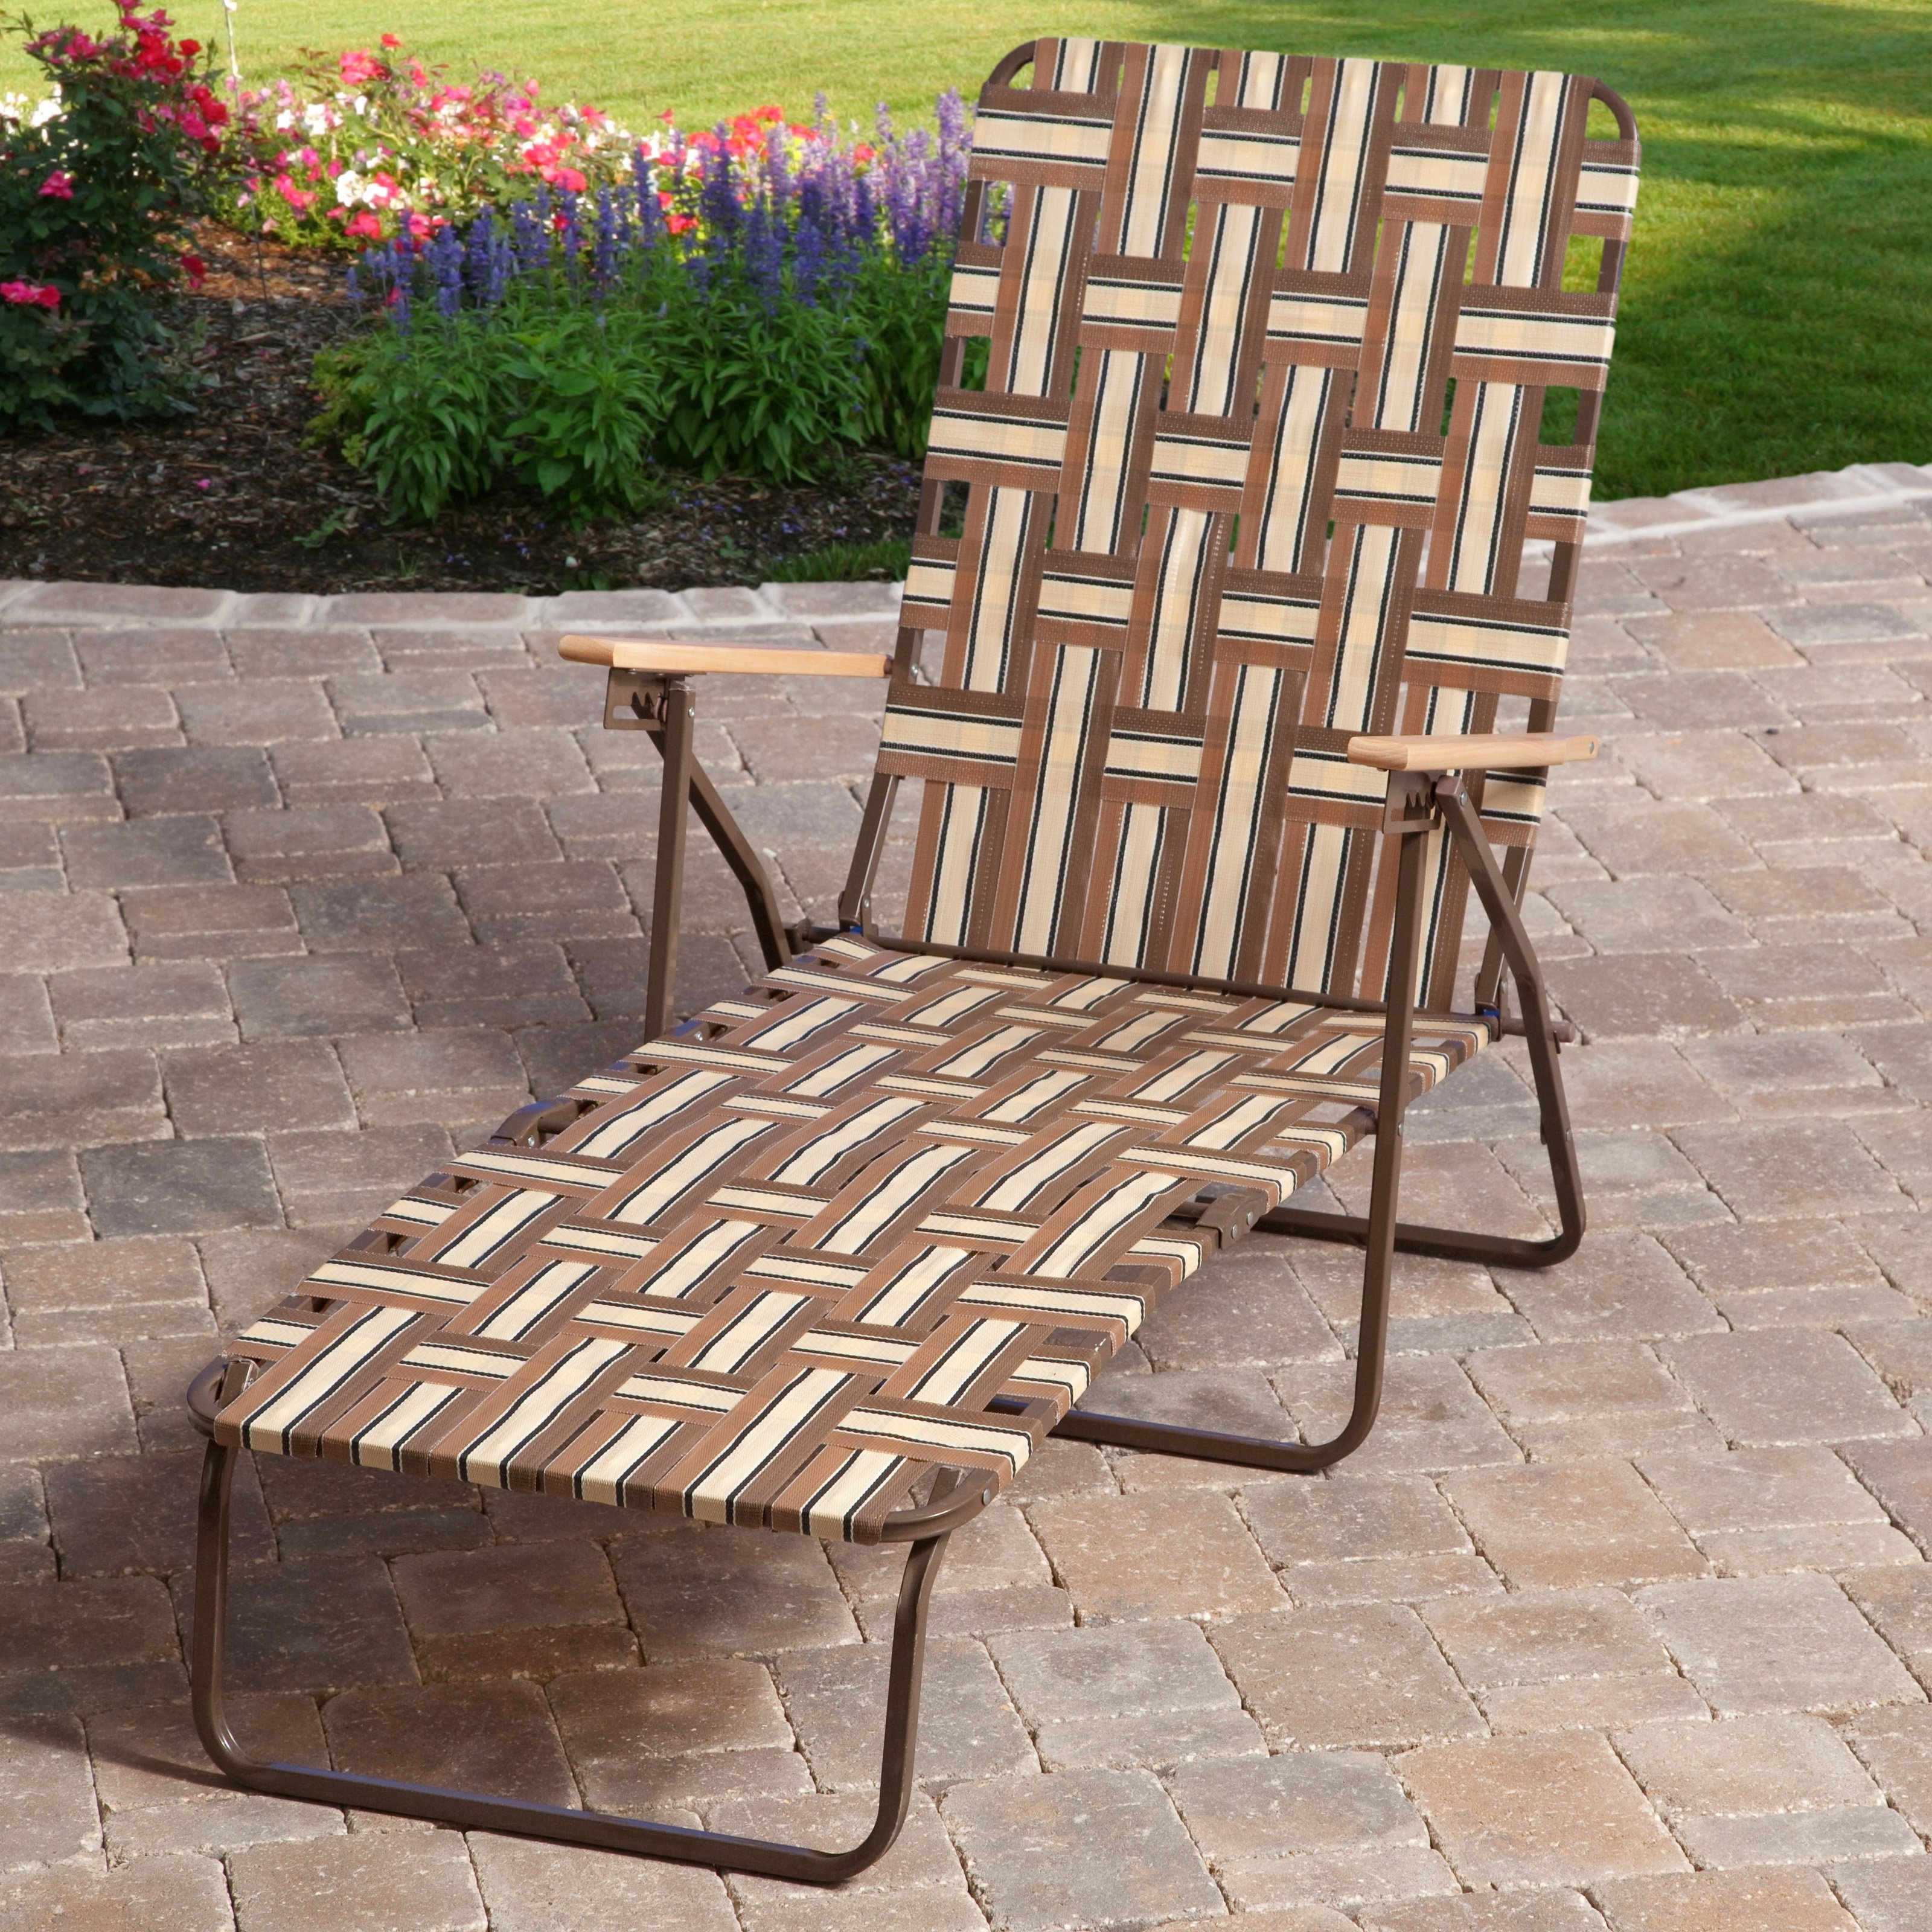 Outdoor Folding Chaise Lounges Regarding Well Known Rio Deluxe Folding Web Chaise Lounge – Walmart (View 13 of 15)